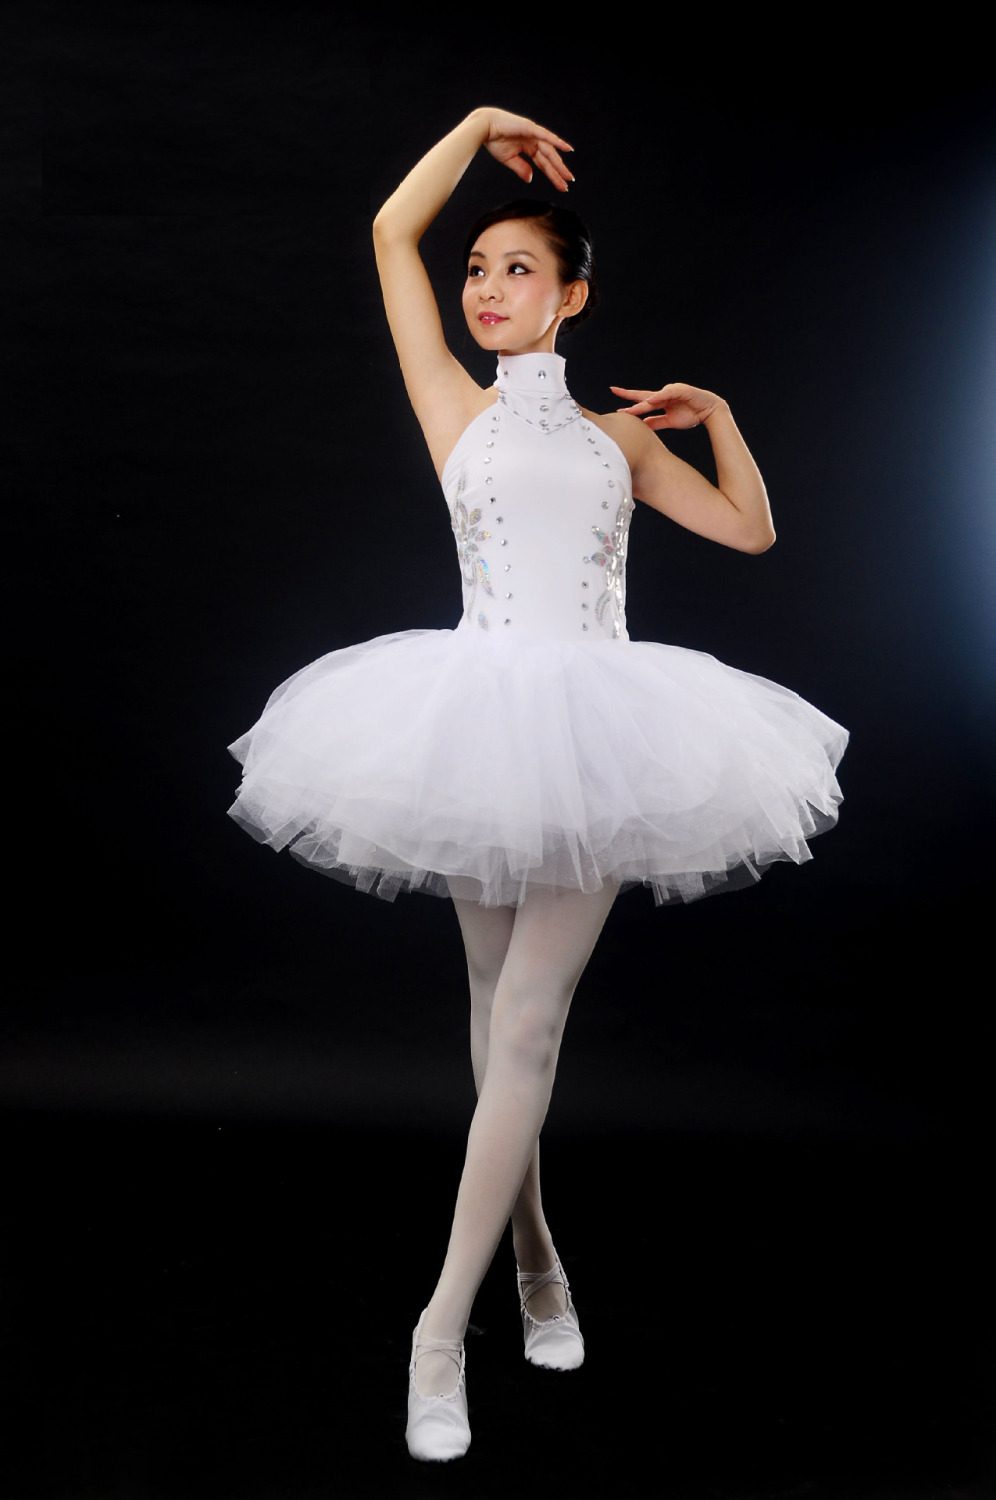 Free Shipping Girls Ballet Tutu Dance Clothes White Elegant Classical Swan Lake Costume For Adults Diamond Stage Ballet Costumes